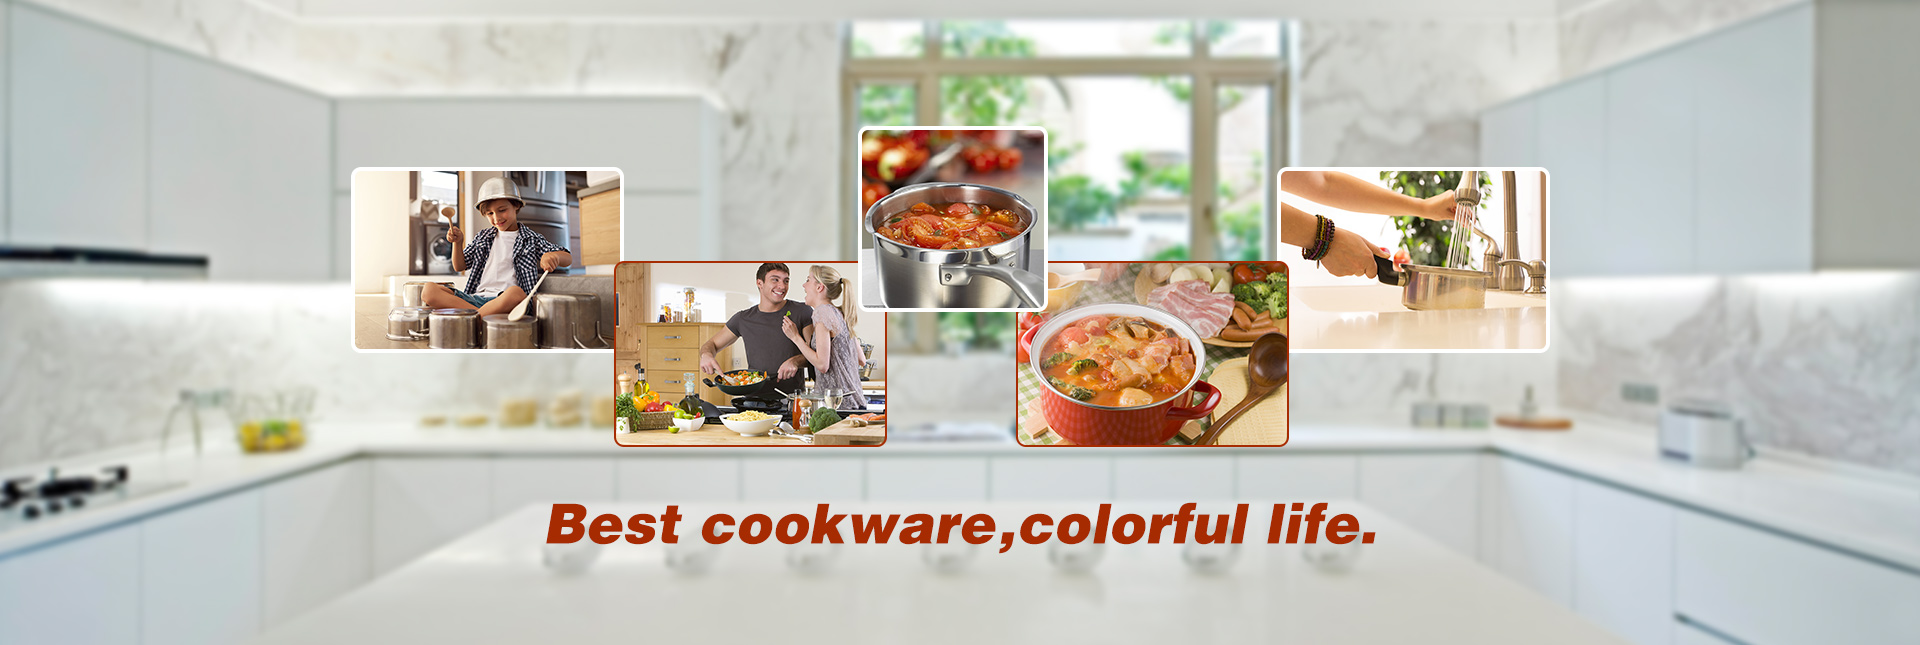 Best cookware,colorful life.